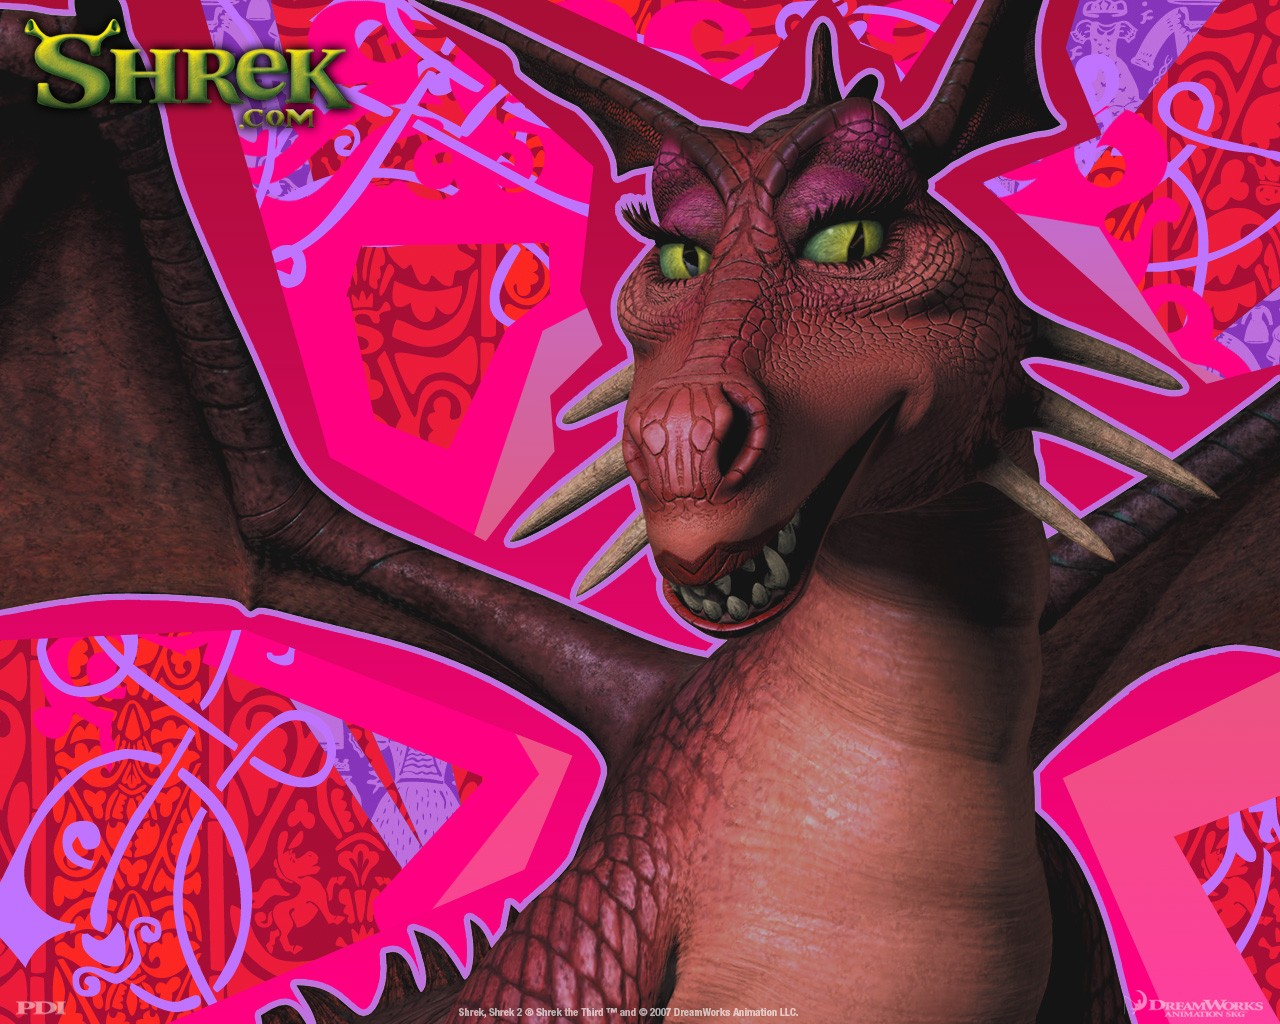 Un wallpaper del Dragone femmina(Dragon) per il film 'Shrek Terzo'